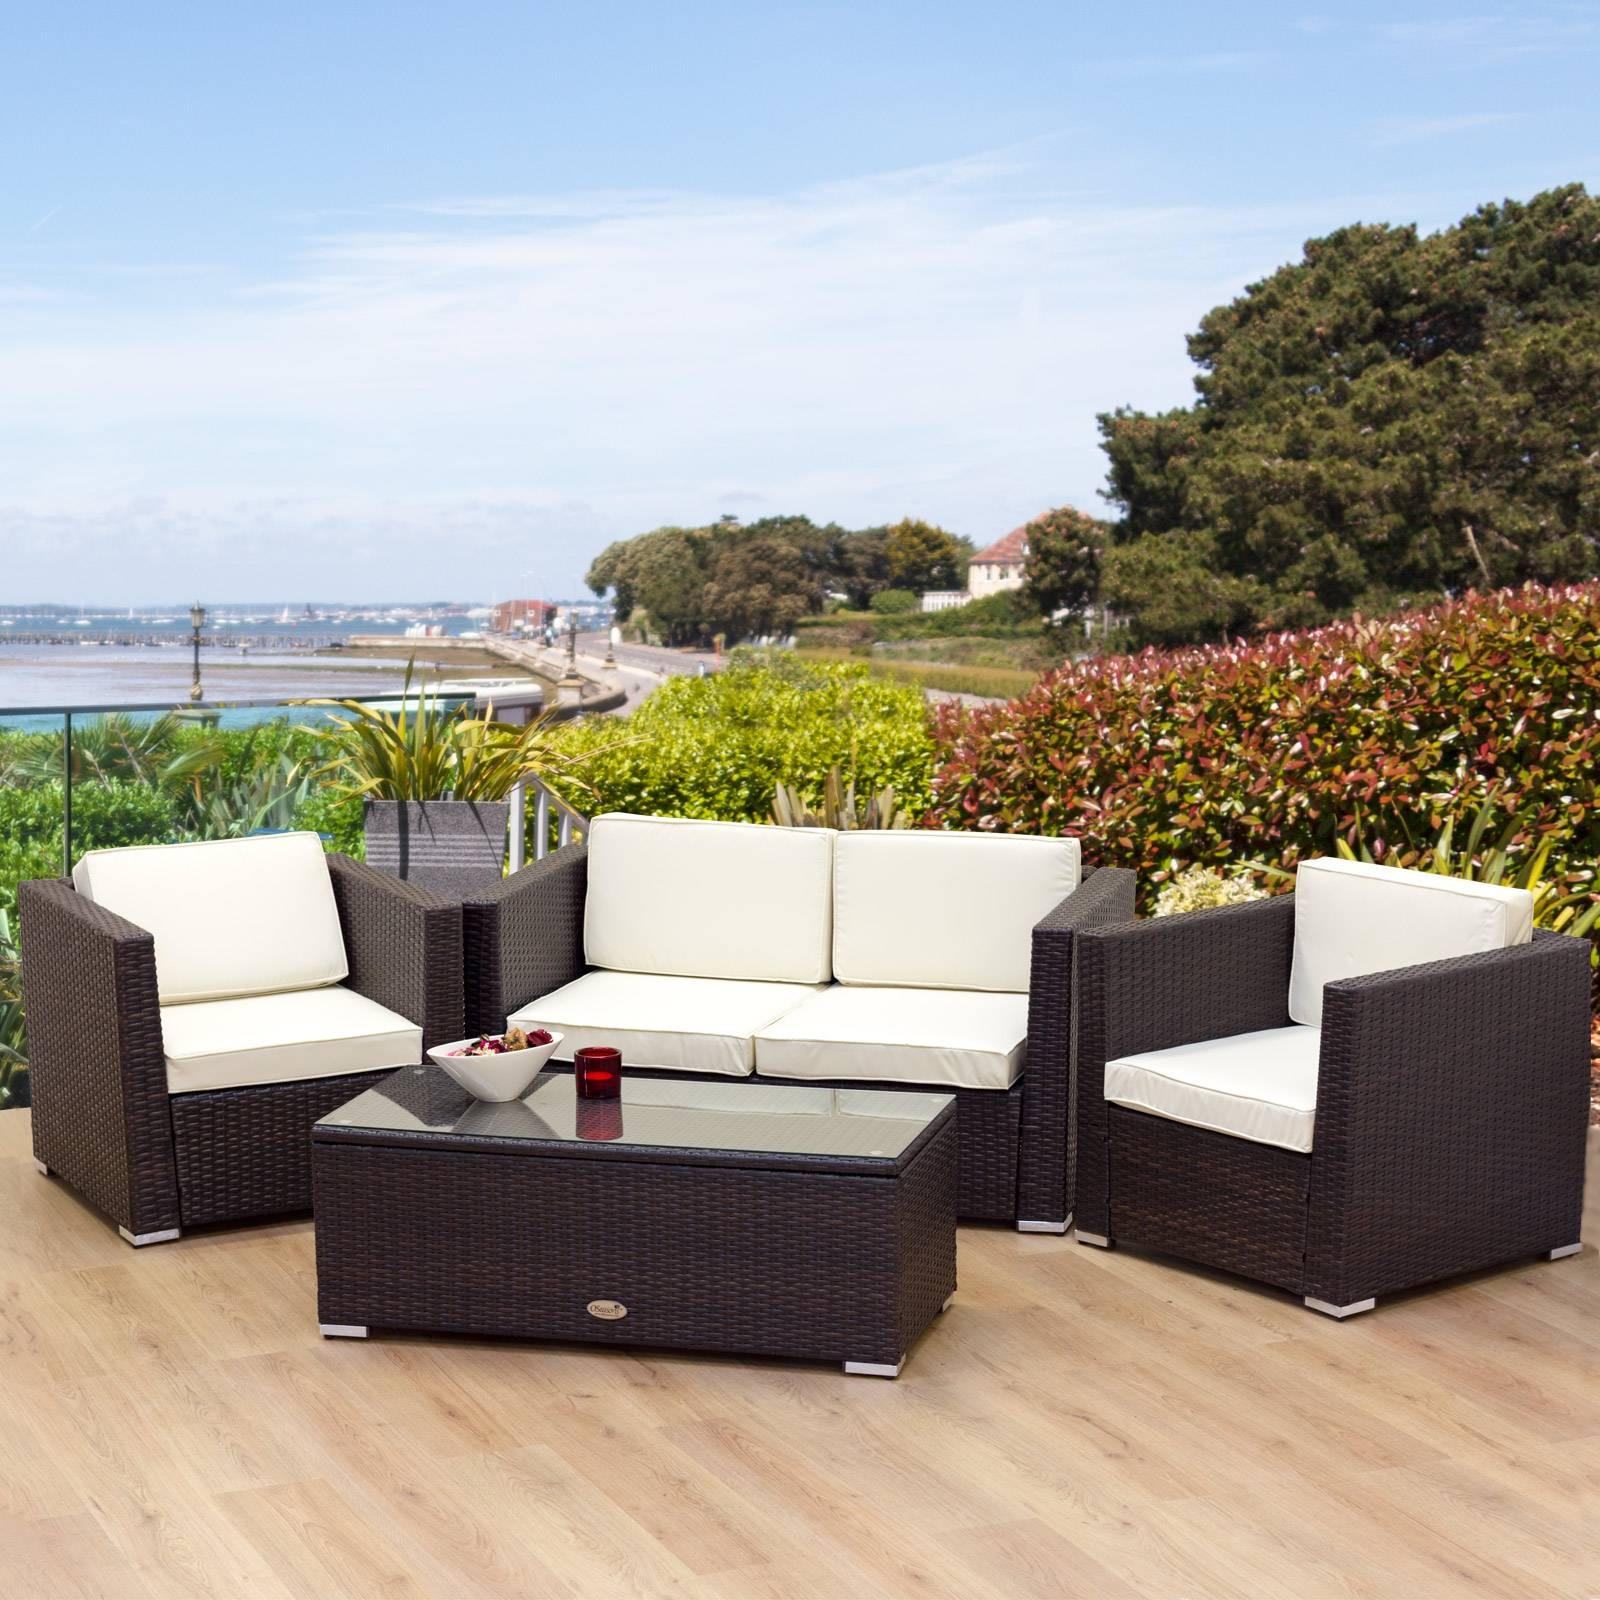 Awesome Rattan Garden Furniture - Hgnv in Modern Rattan Sofas (Image 4 of 30)